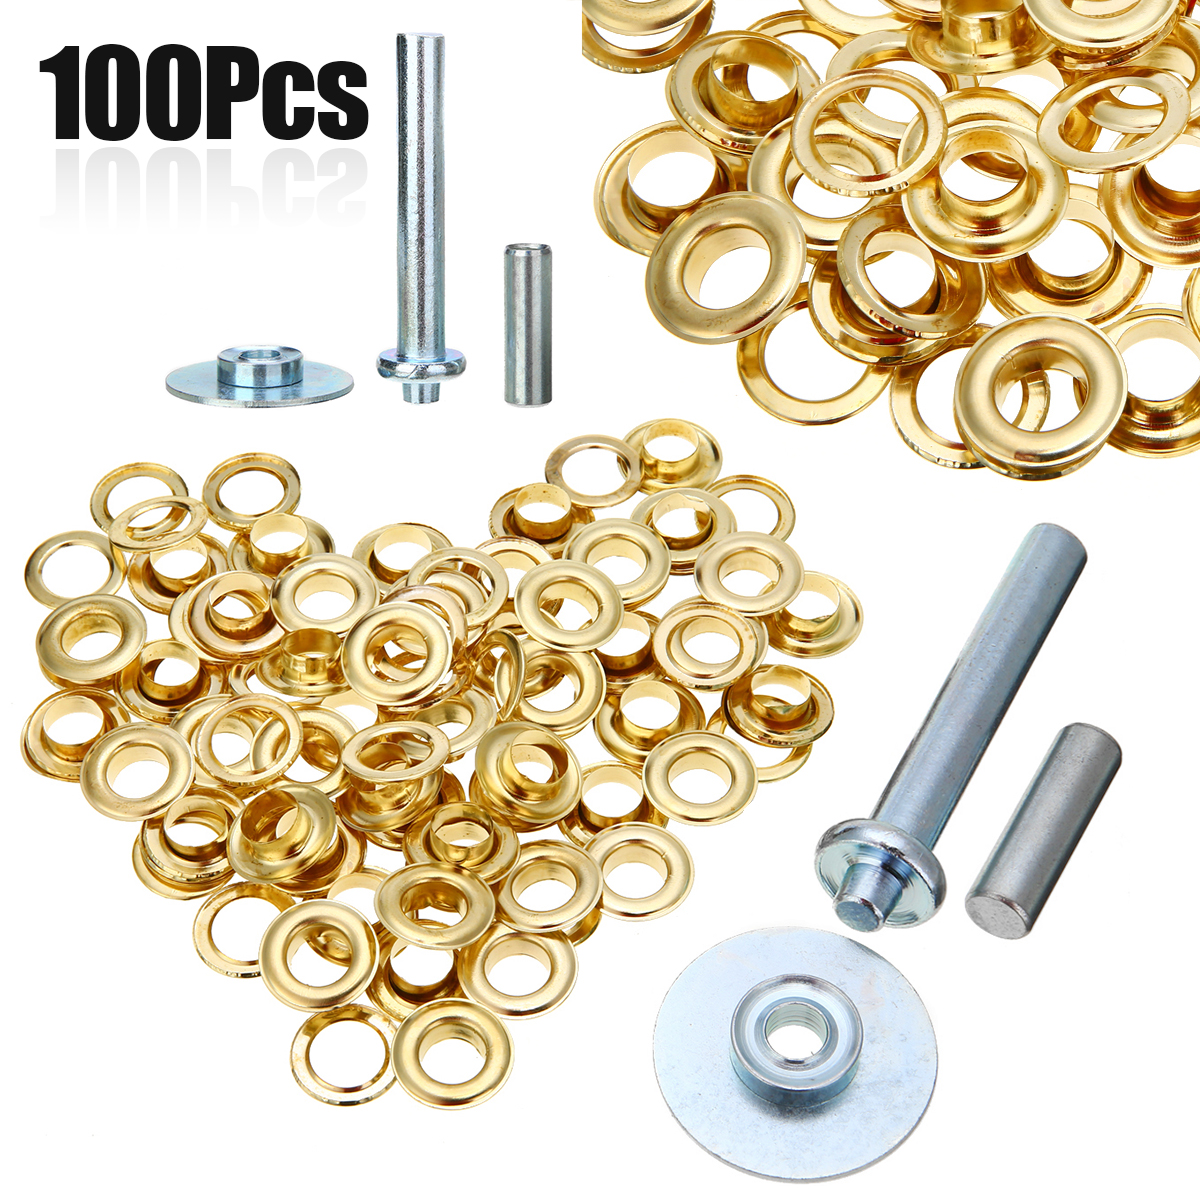 Mayitr 100Pcs Punch Grommets and Tarpaulin Awning Tent Tarp Repair Kit Hole Eyelet NewMayitr 100Pcs Punch Grommets and Tarpaulin Awning Tent Tarp Repair Kit Hole Eyelet New